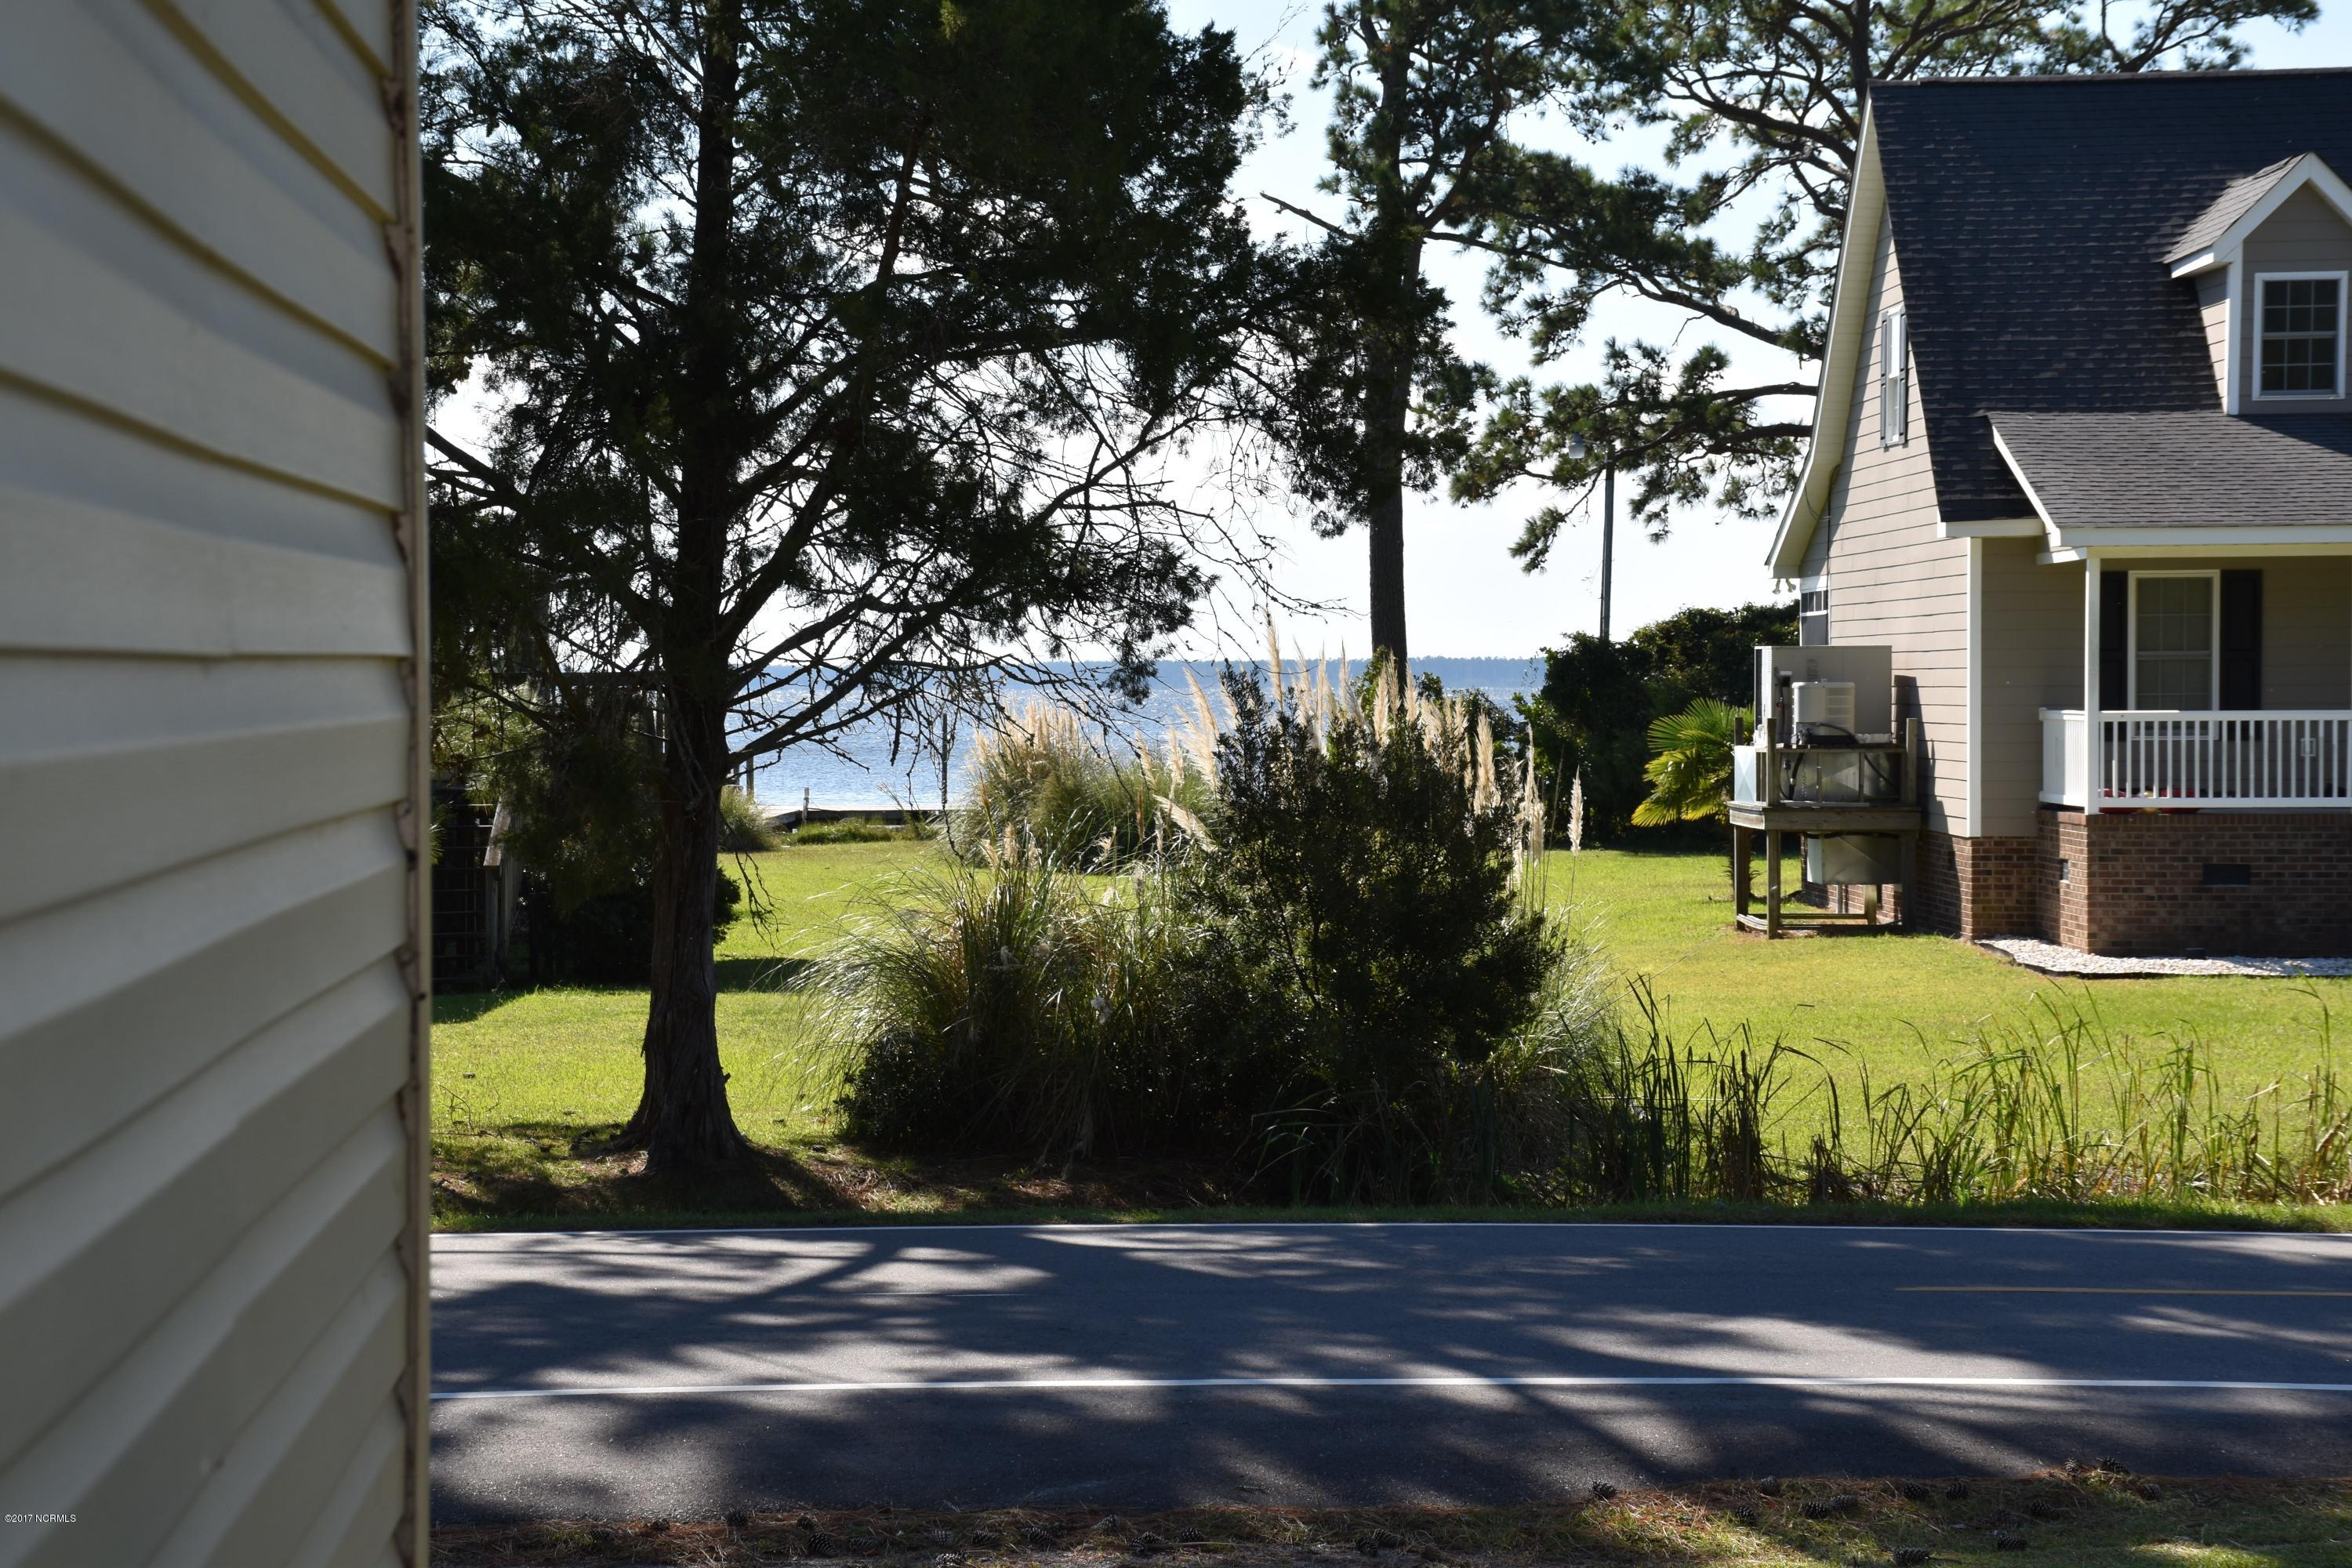 760 Old Pamlico Beach Road, Belhaven, North Carolina, 3 Bedrooms Bedrooms, 8 Rooms Rooms,2 BathroomsBathrooms,Single family residence,For sale,Old Pamlico Beach,100087914